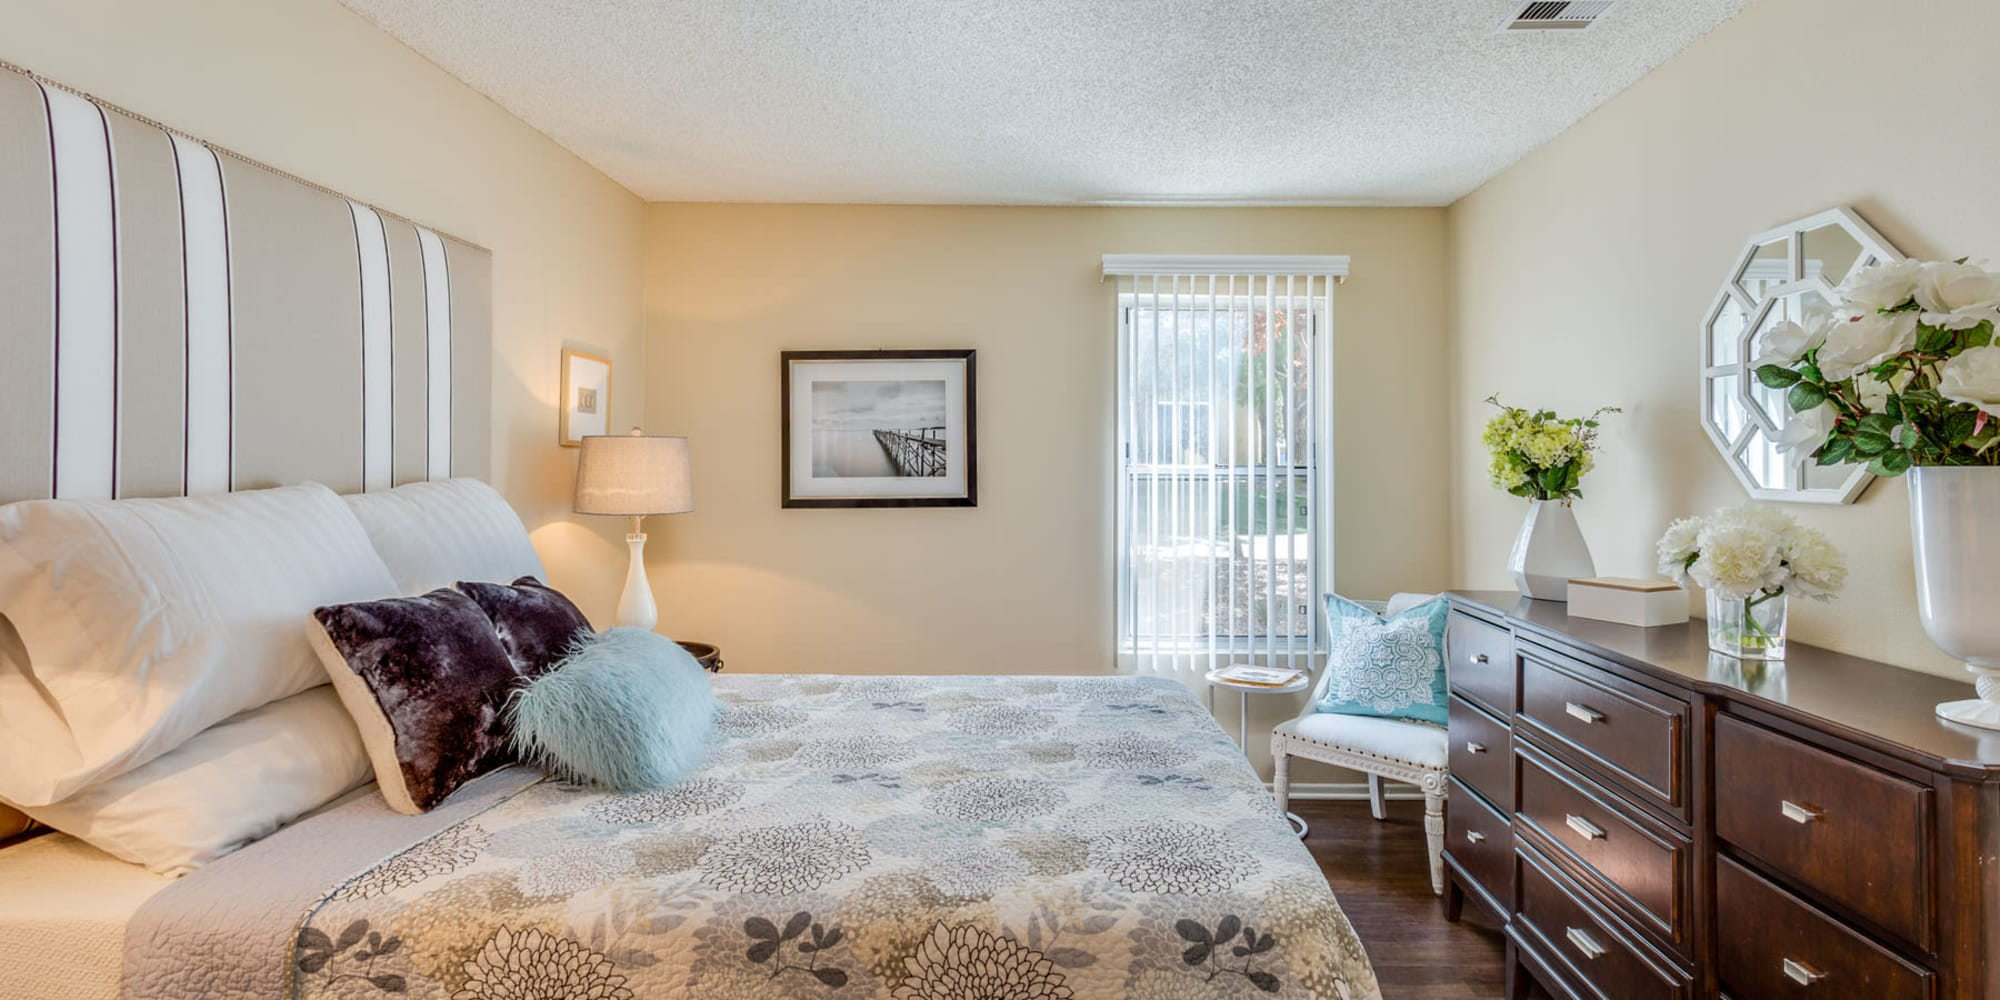 Well-furnished primary bedroom with a bay window and vertical blinds at Mountain Vista in Victorville, California